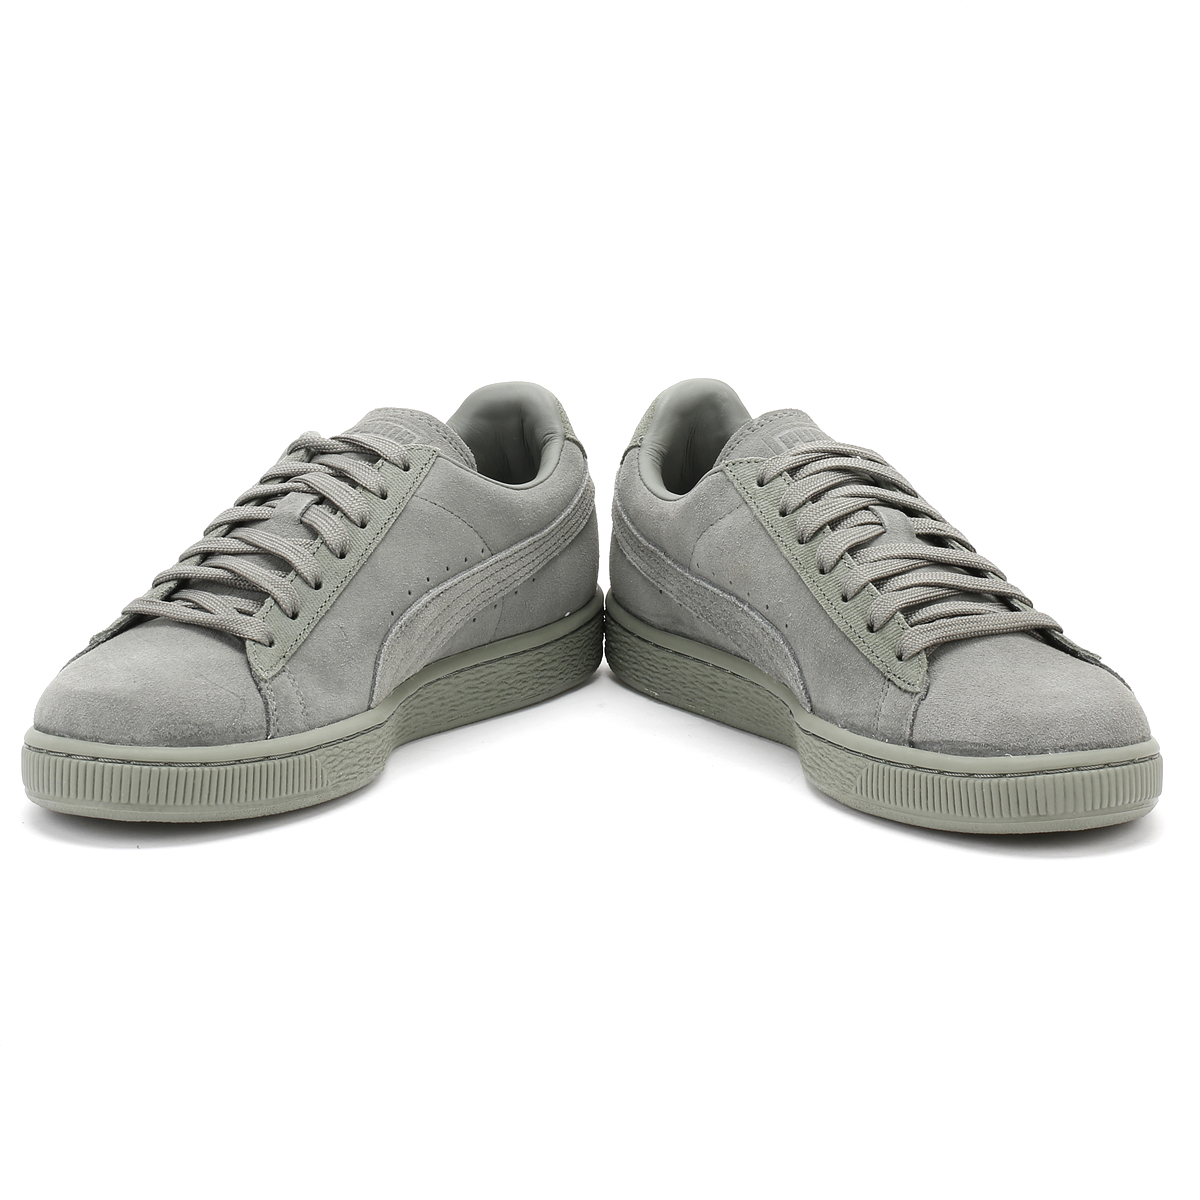 60b482748da7 Puma-Mens-Classic-Trainers-5-Colours-Leather-or-